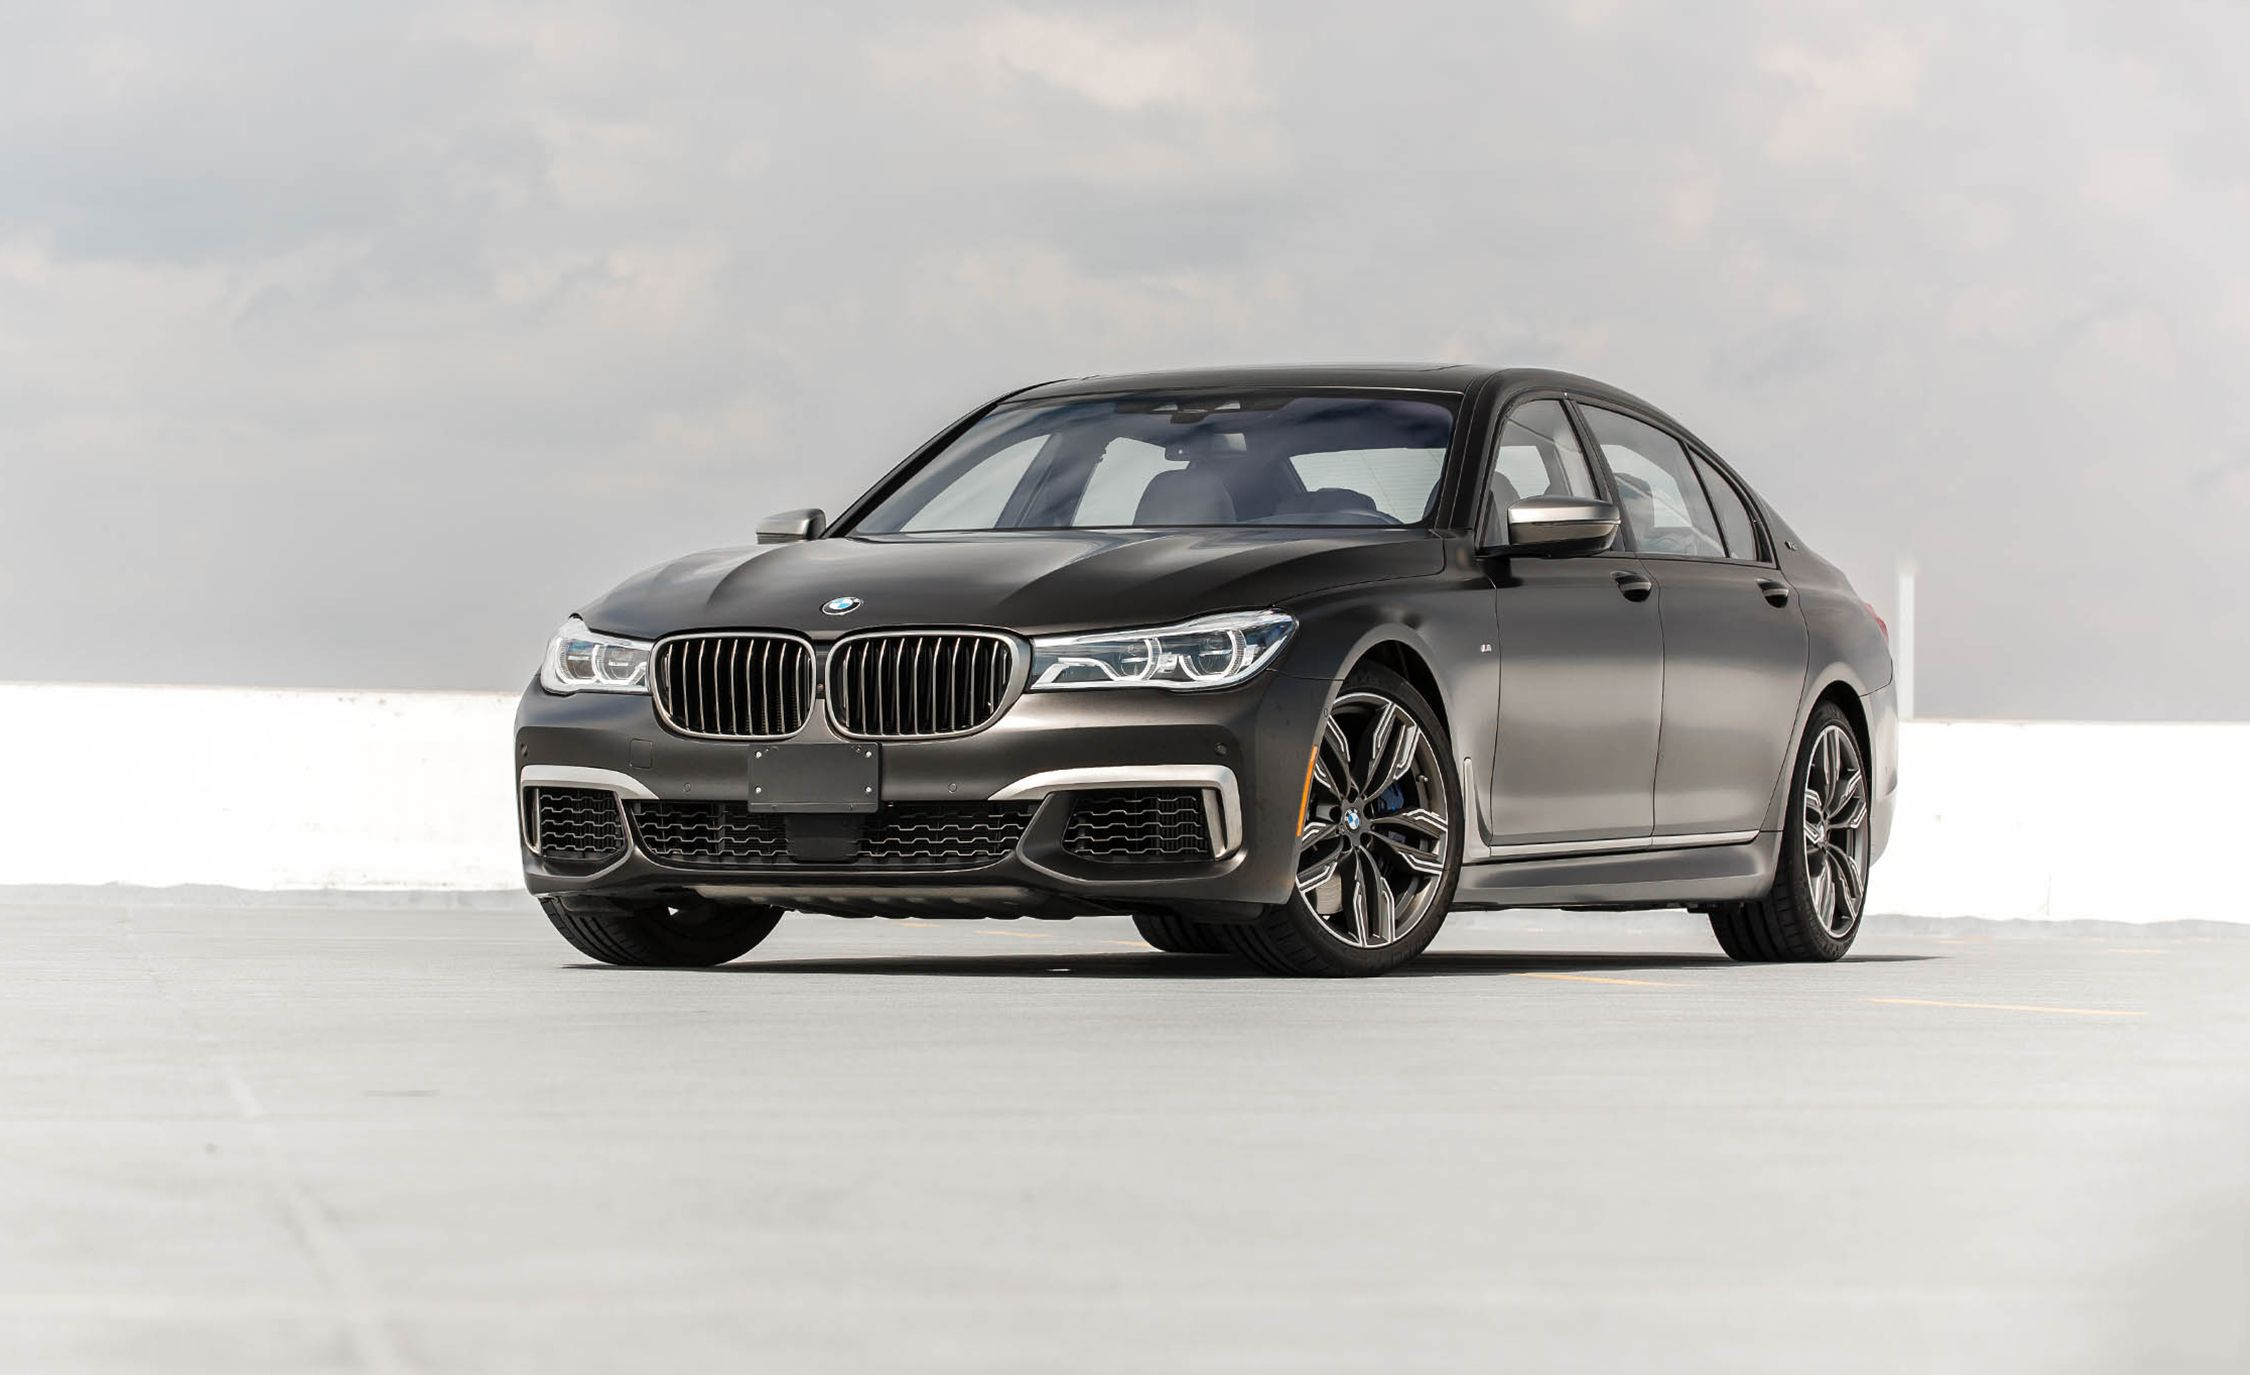 BMW 7 series Reviews BMW 7 series Price s and Specs